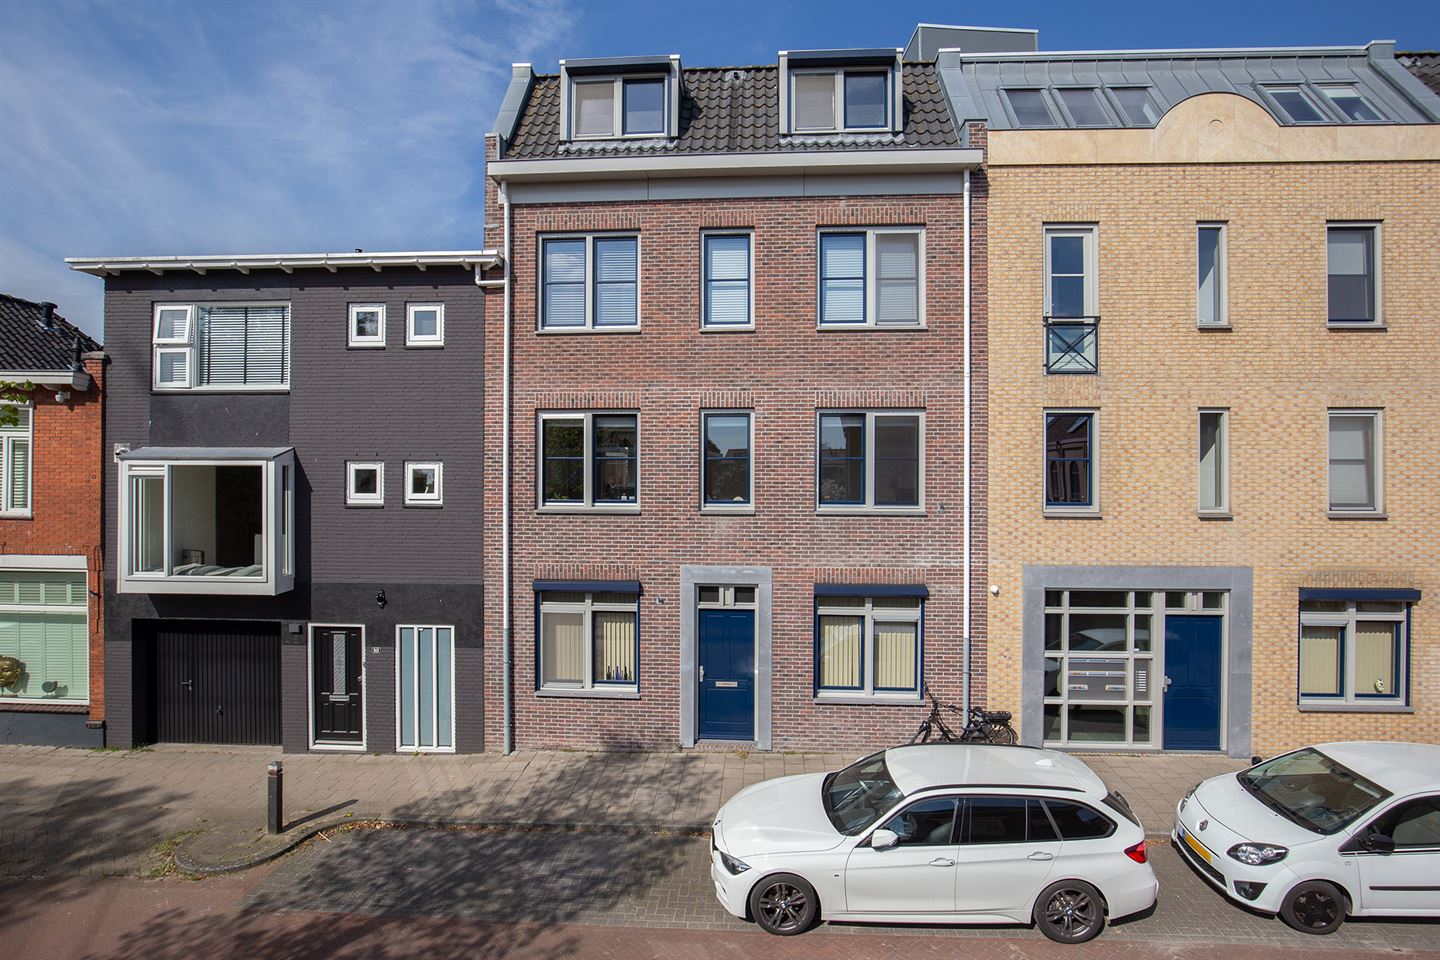 View photo 1 of Hooftstraat 317 a